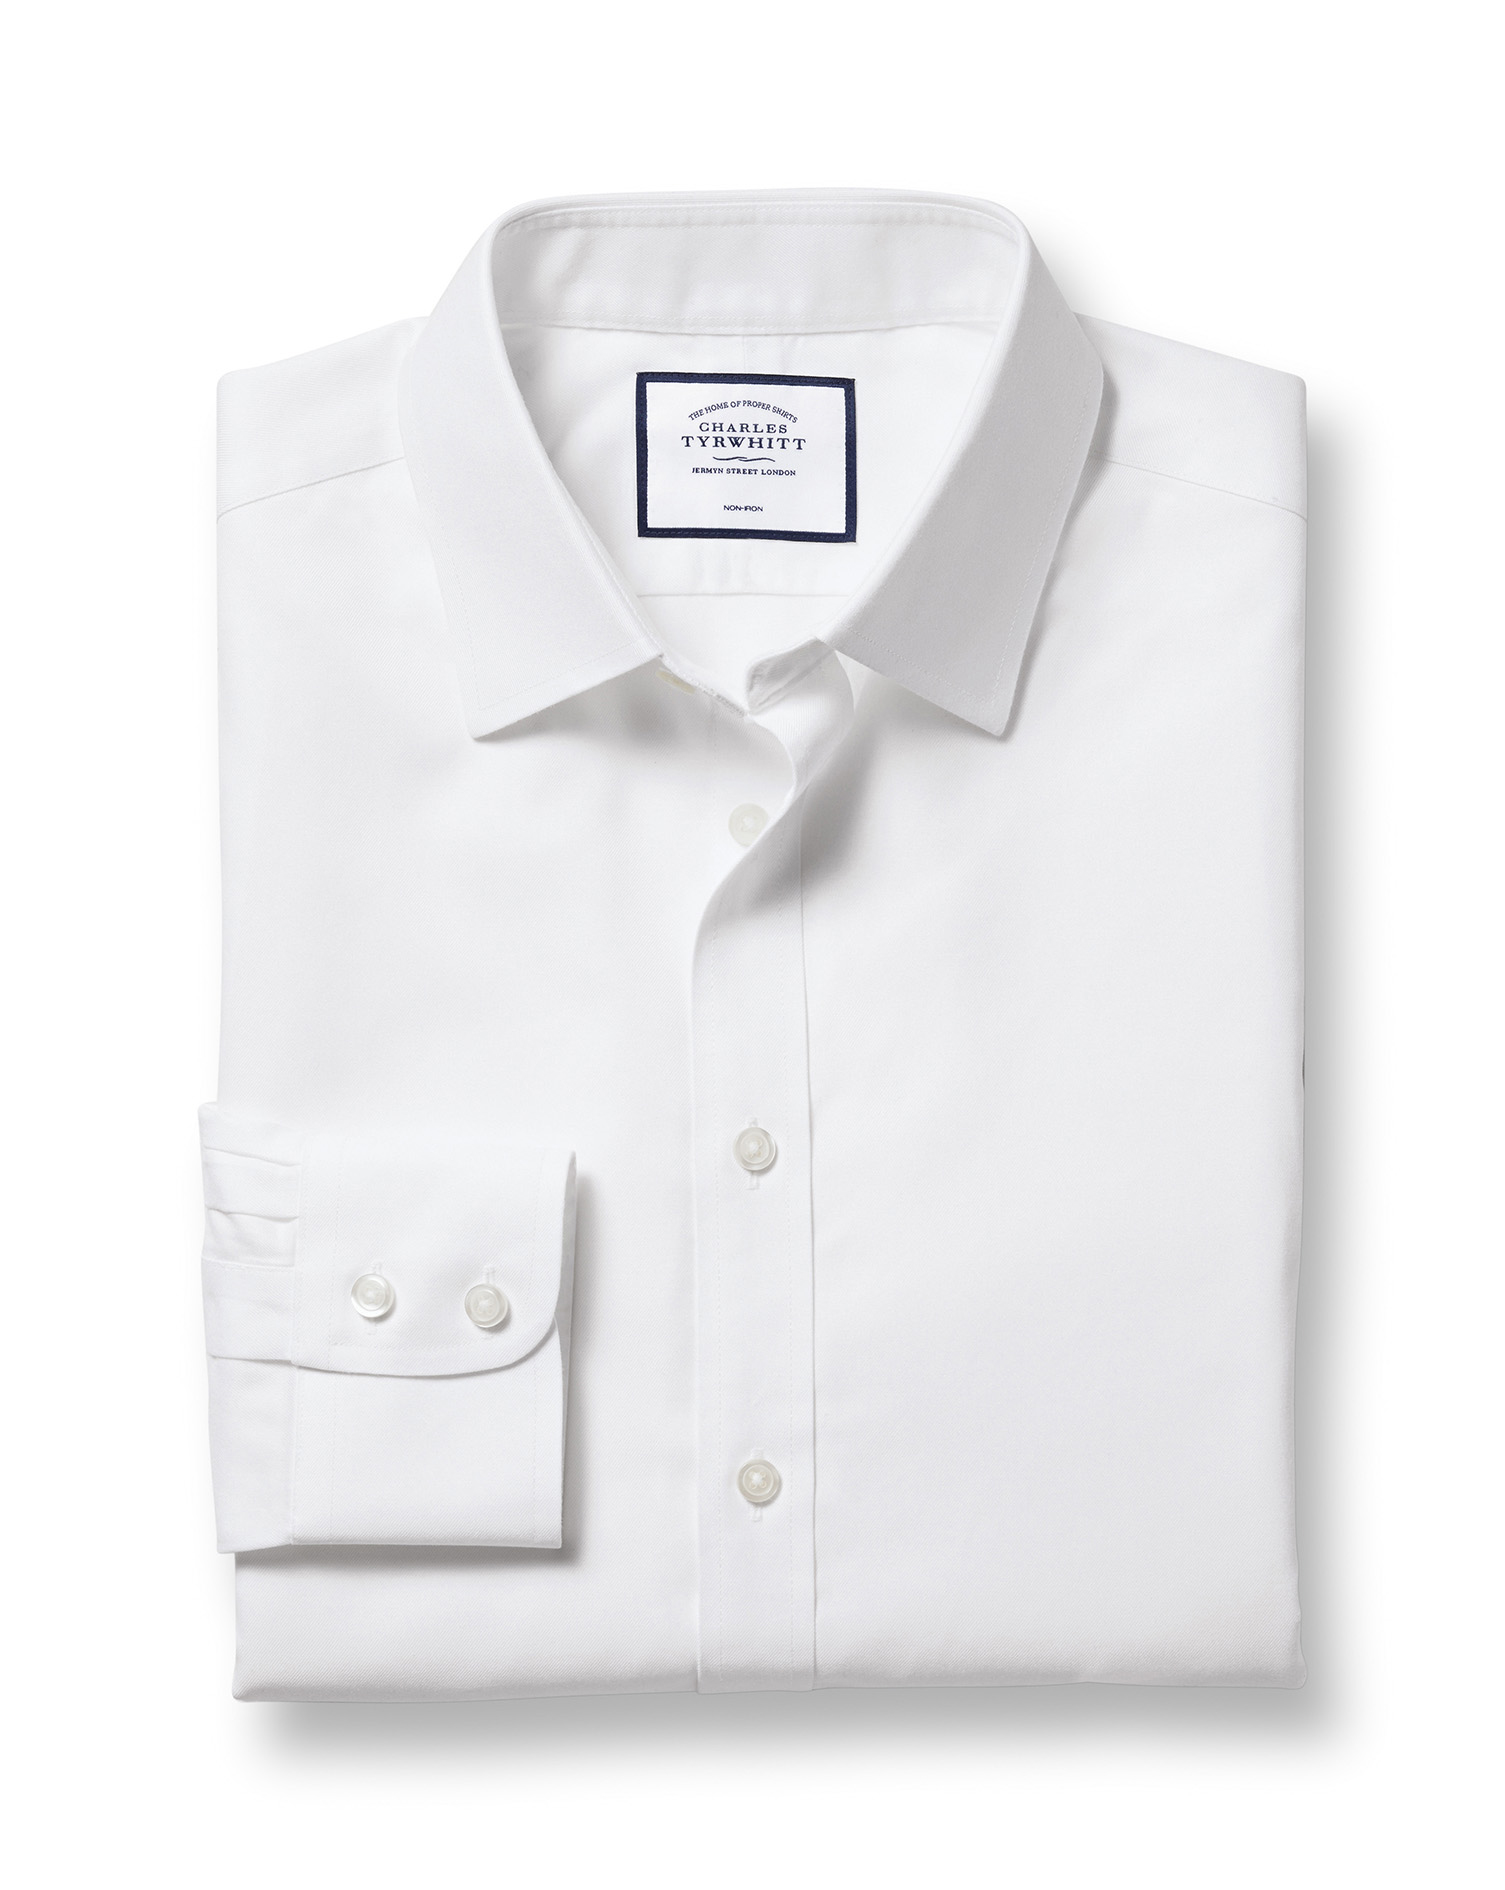 Slim Fit Non-Iron Twill White Cotton Formal Shirt Single Cuff Size 17/35 by Charles Tyrwhitt